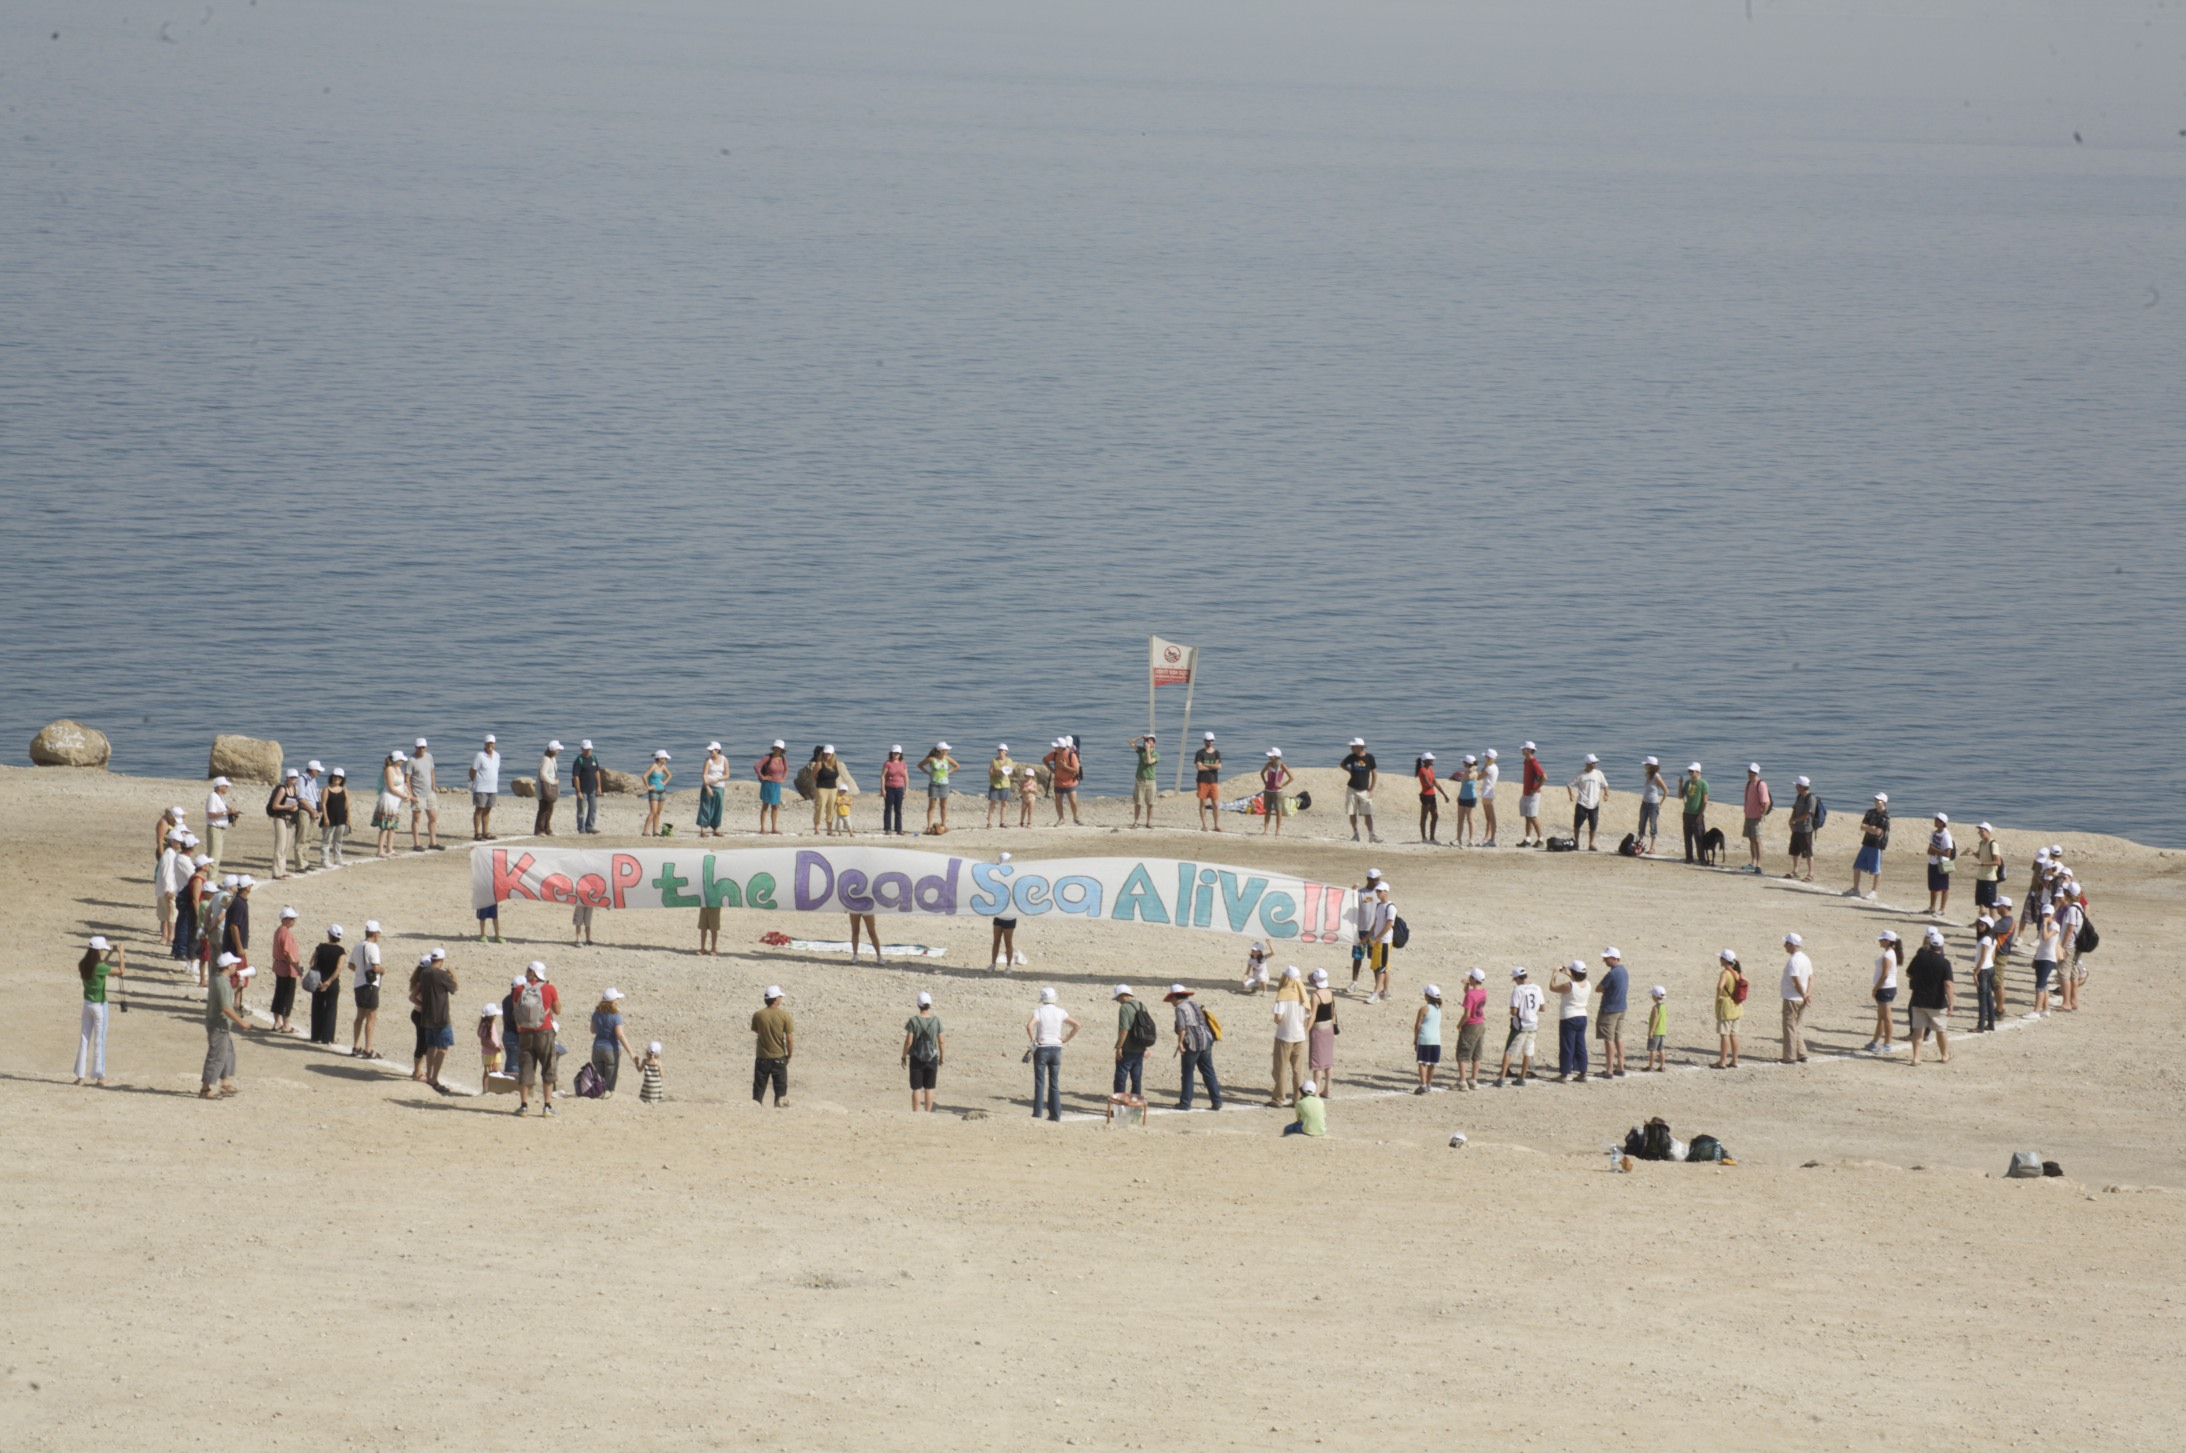 0 for 350 for climate change day at dead sea